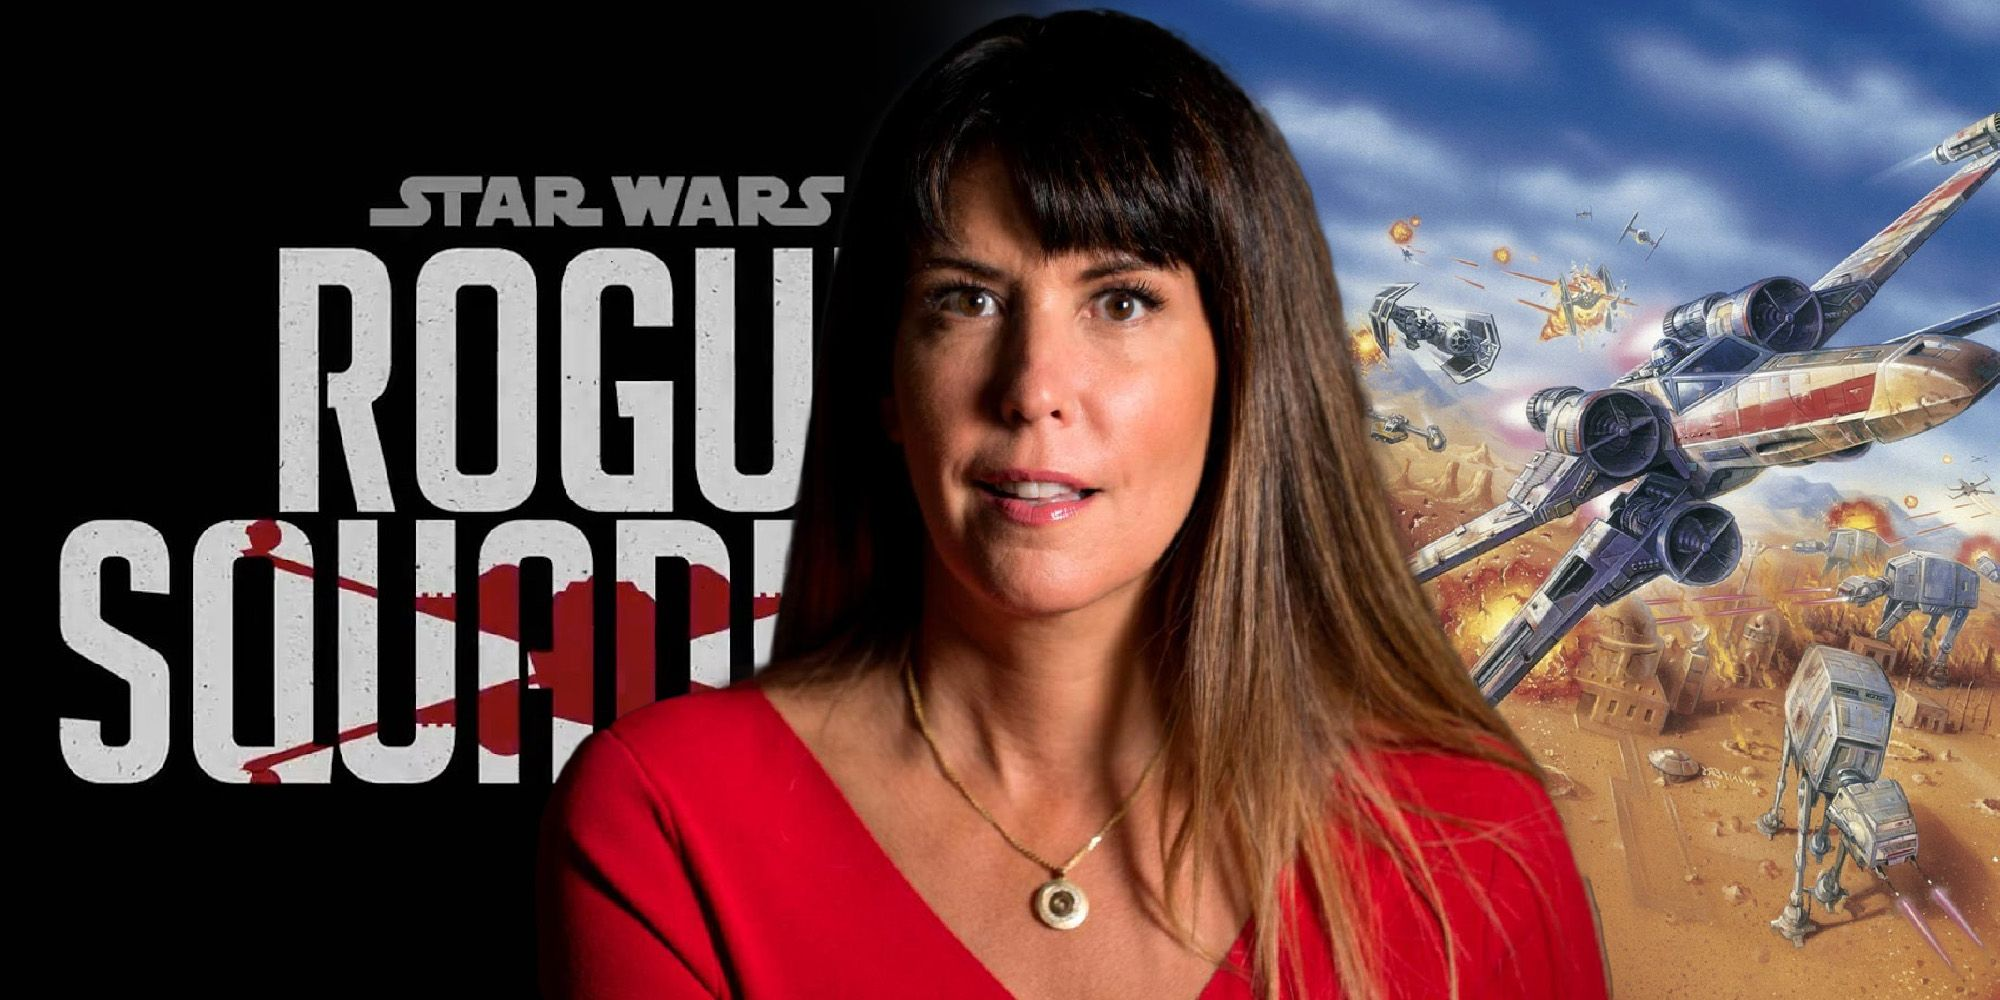 Star Wars: Rogue Squadron - Release Date, Cast & Story Details